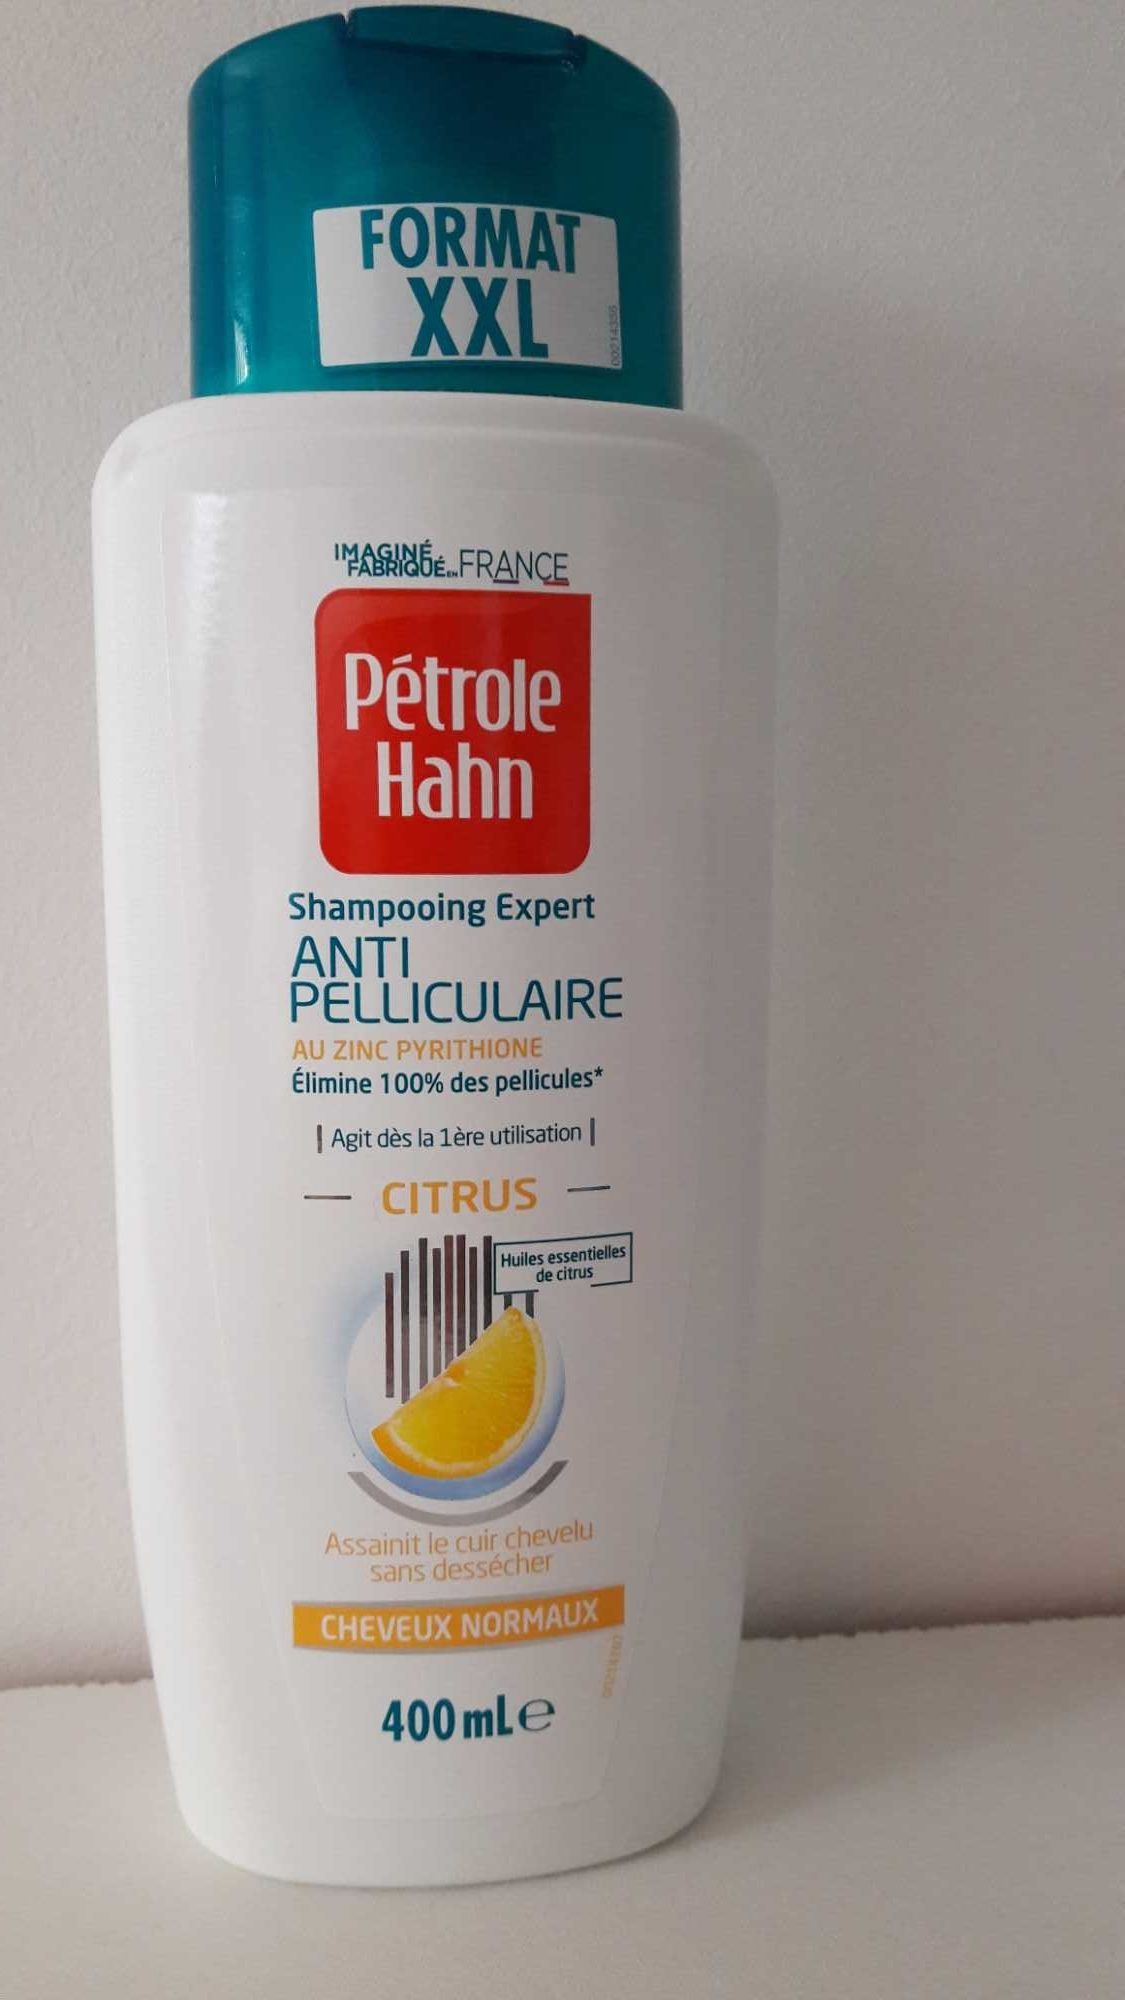 Shampooing expert anti pelliculaire - Product - fr